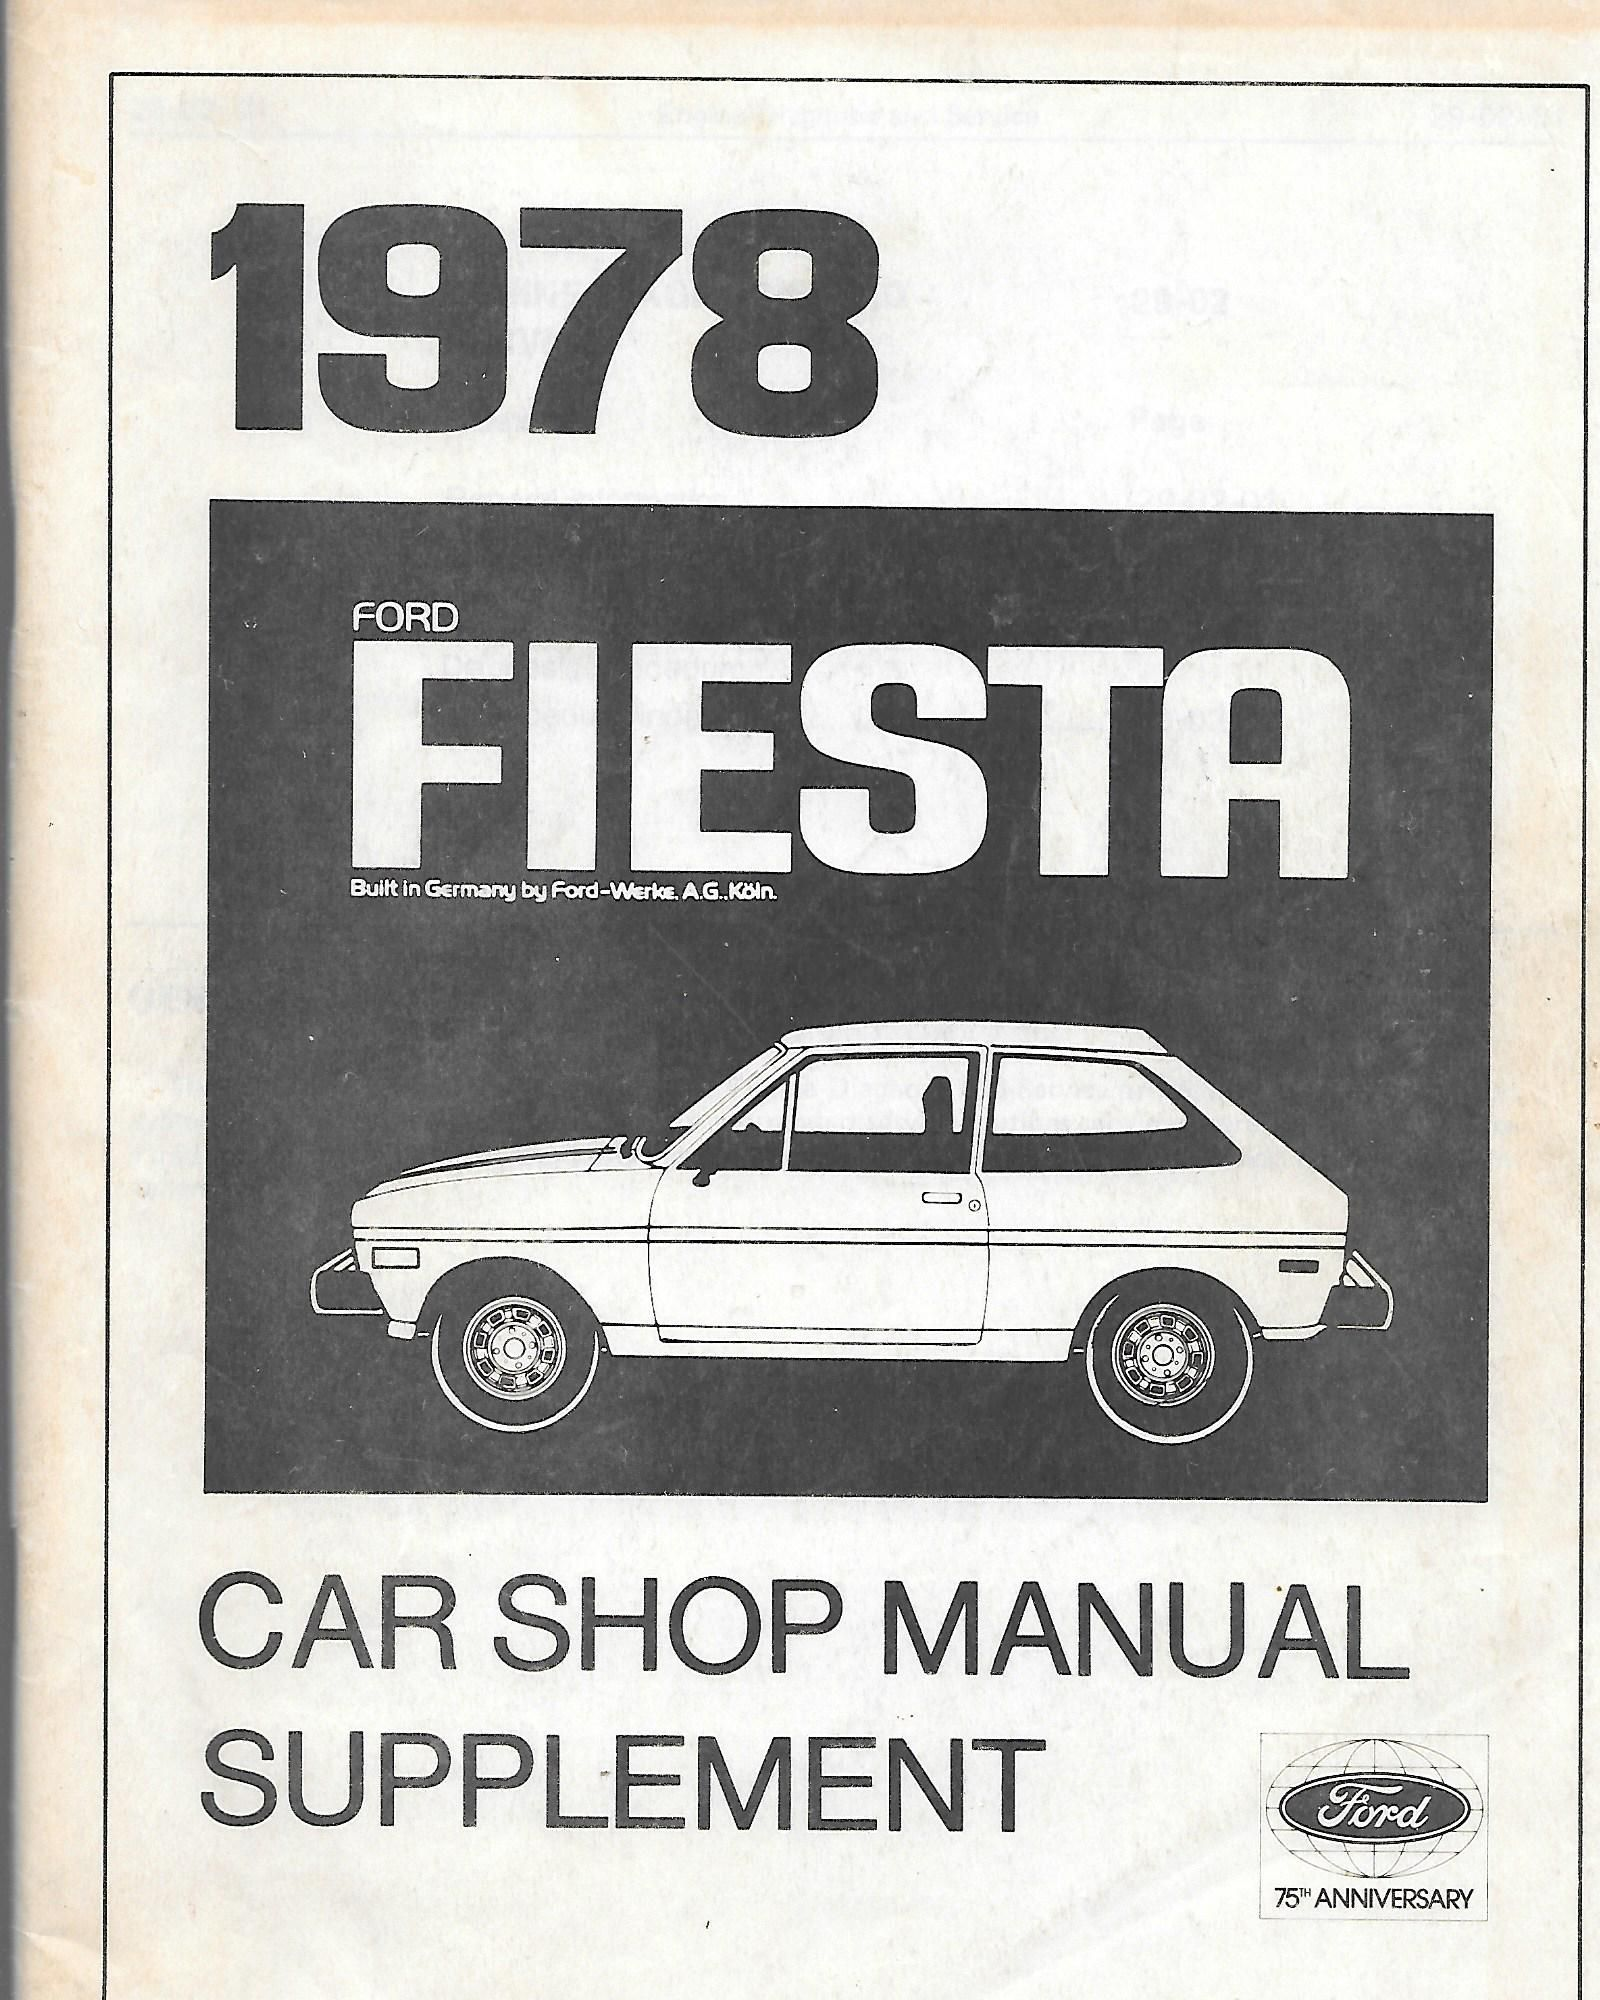 1978 ford fiesta car shop manual supplement by ford motor. Black Bedroom Furniture Sets. Home Design Ideas